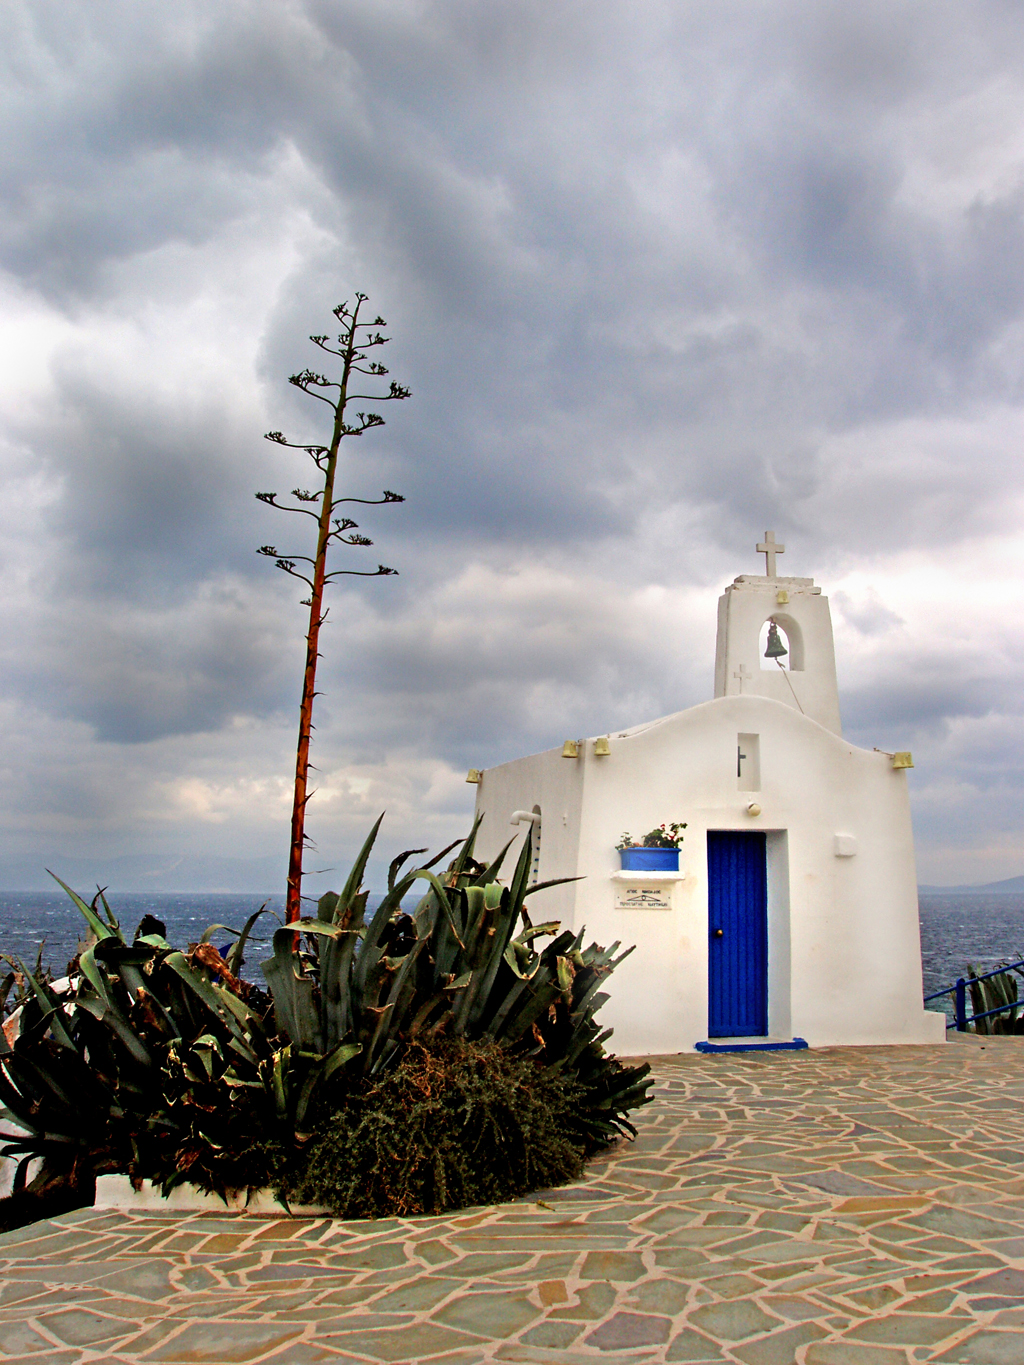 dreamstime_3167257_St_Nicolaos (Agios Nikolaos) Greek Orthodox church as storm clouds are forming above Rafina, Greece